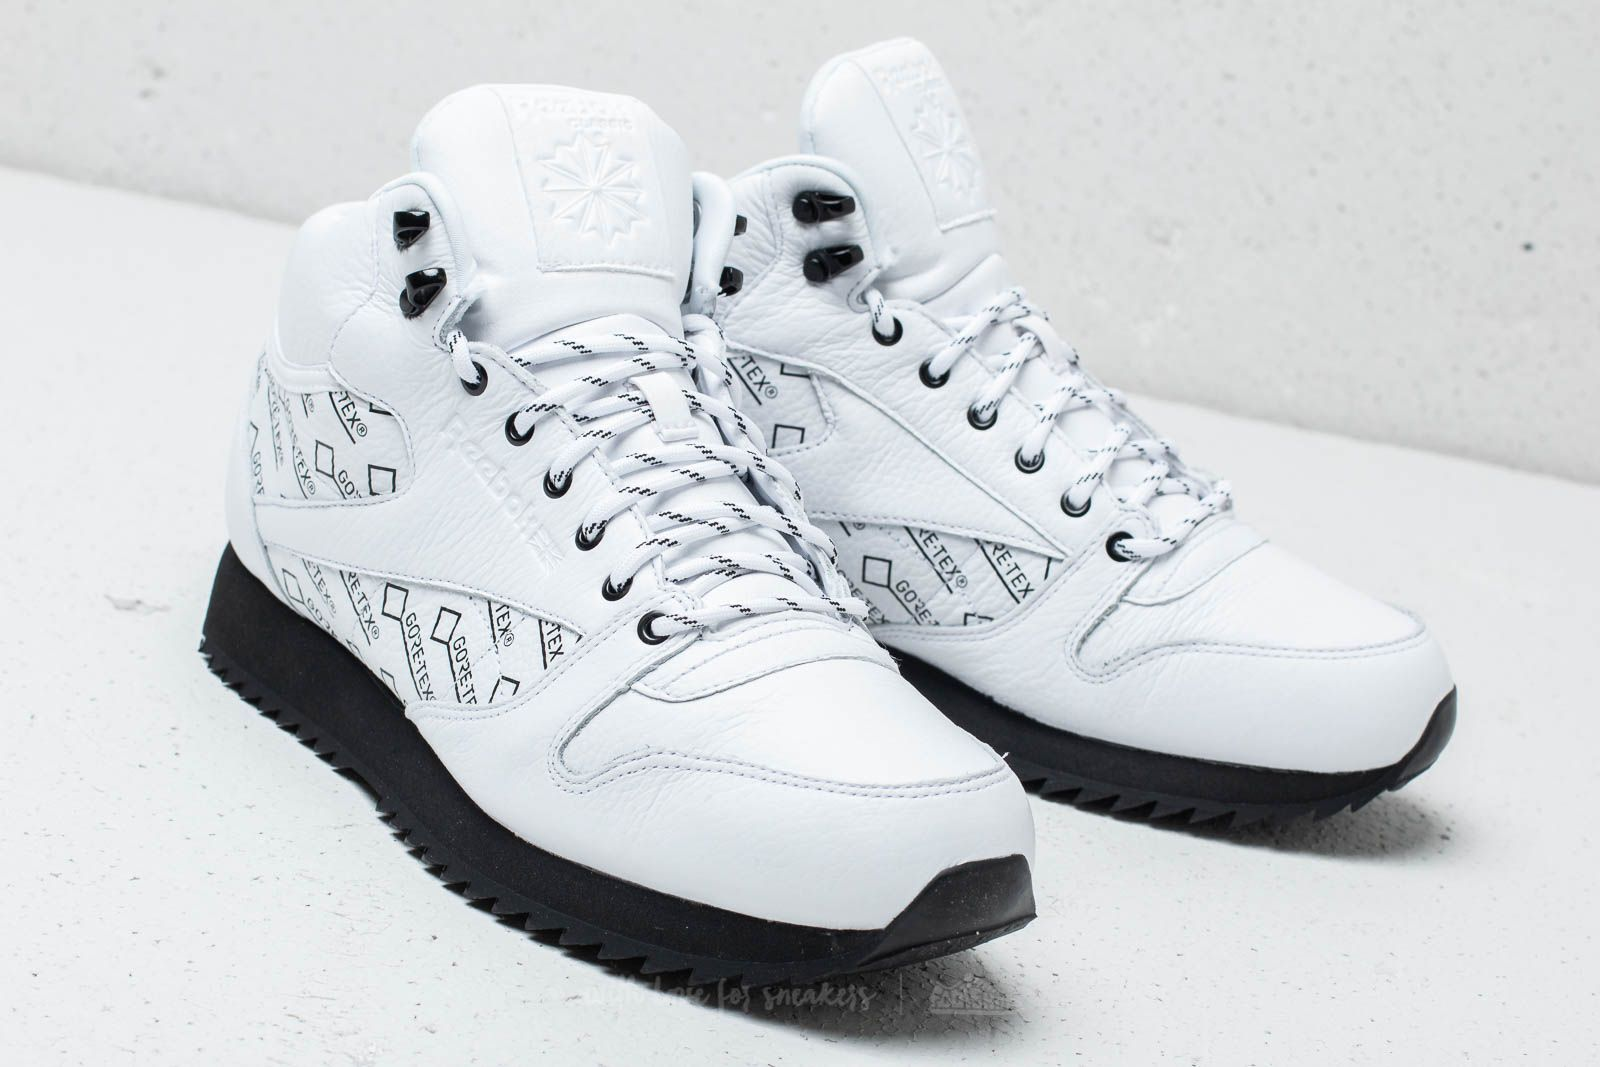 e58a2641b73 Reebok CL Leather Mid Ripple Gore-Tex White  Black at a great price 72